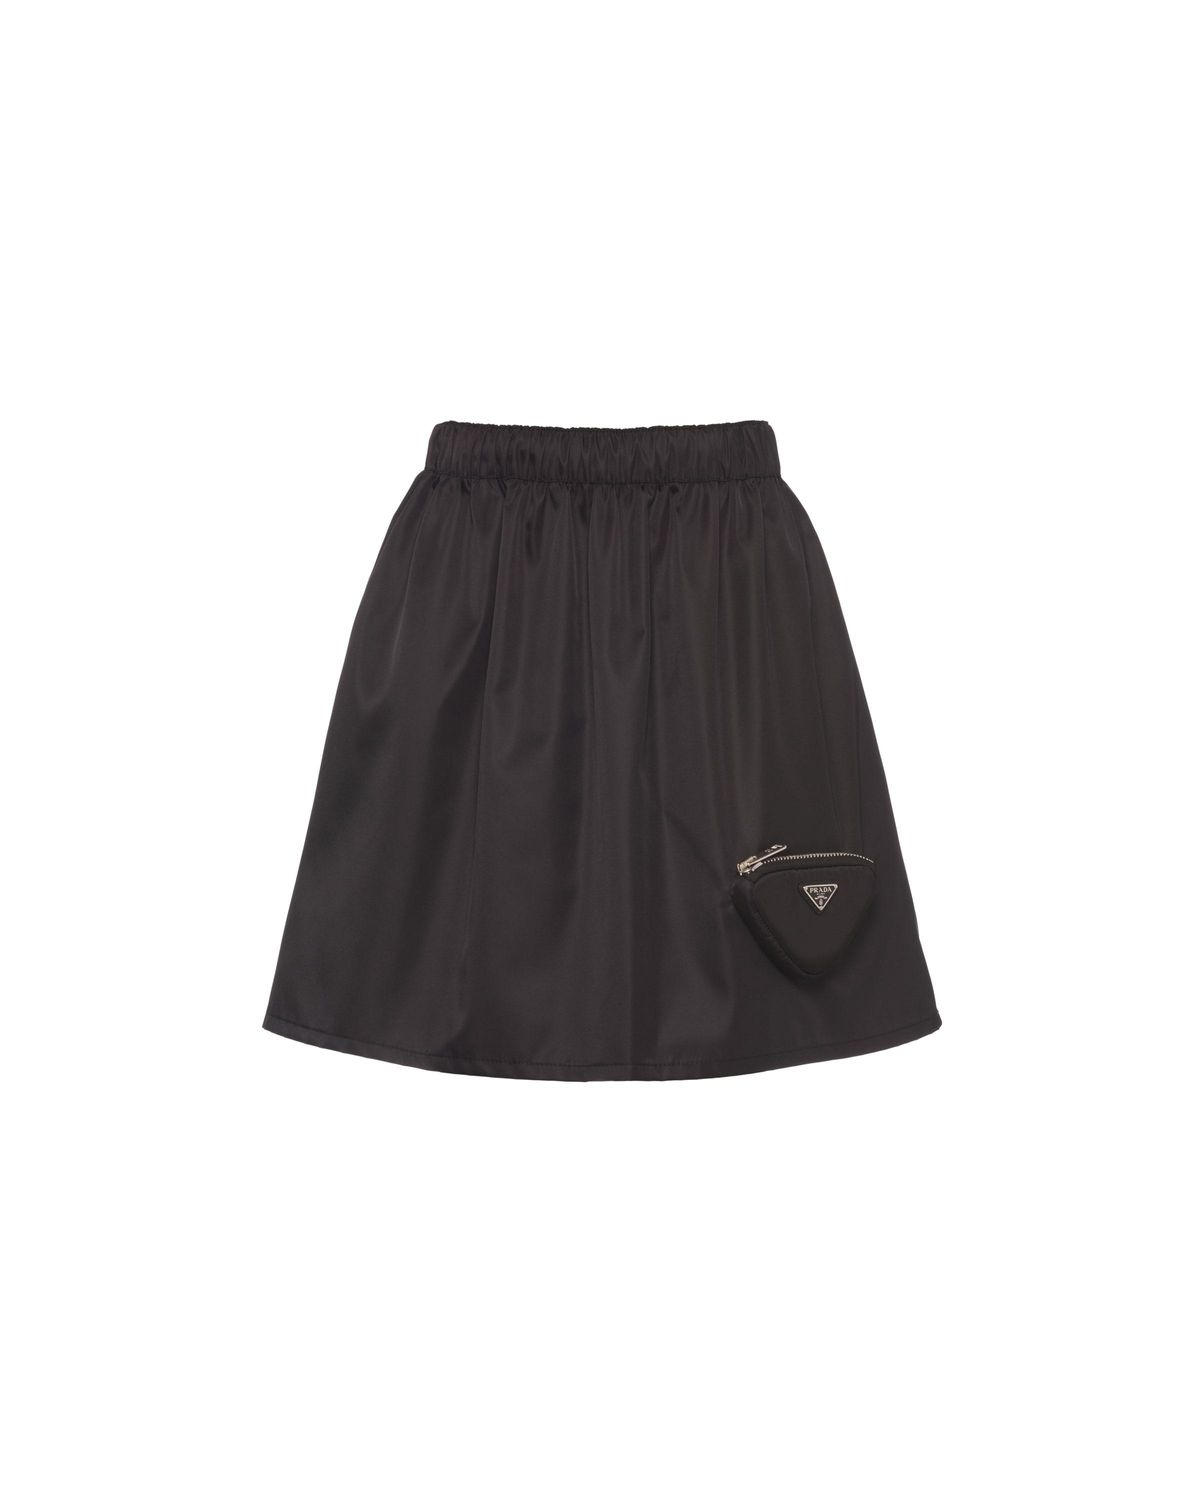 re nylon miniskirt with pouch